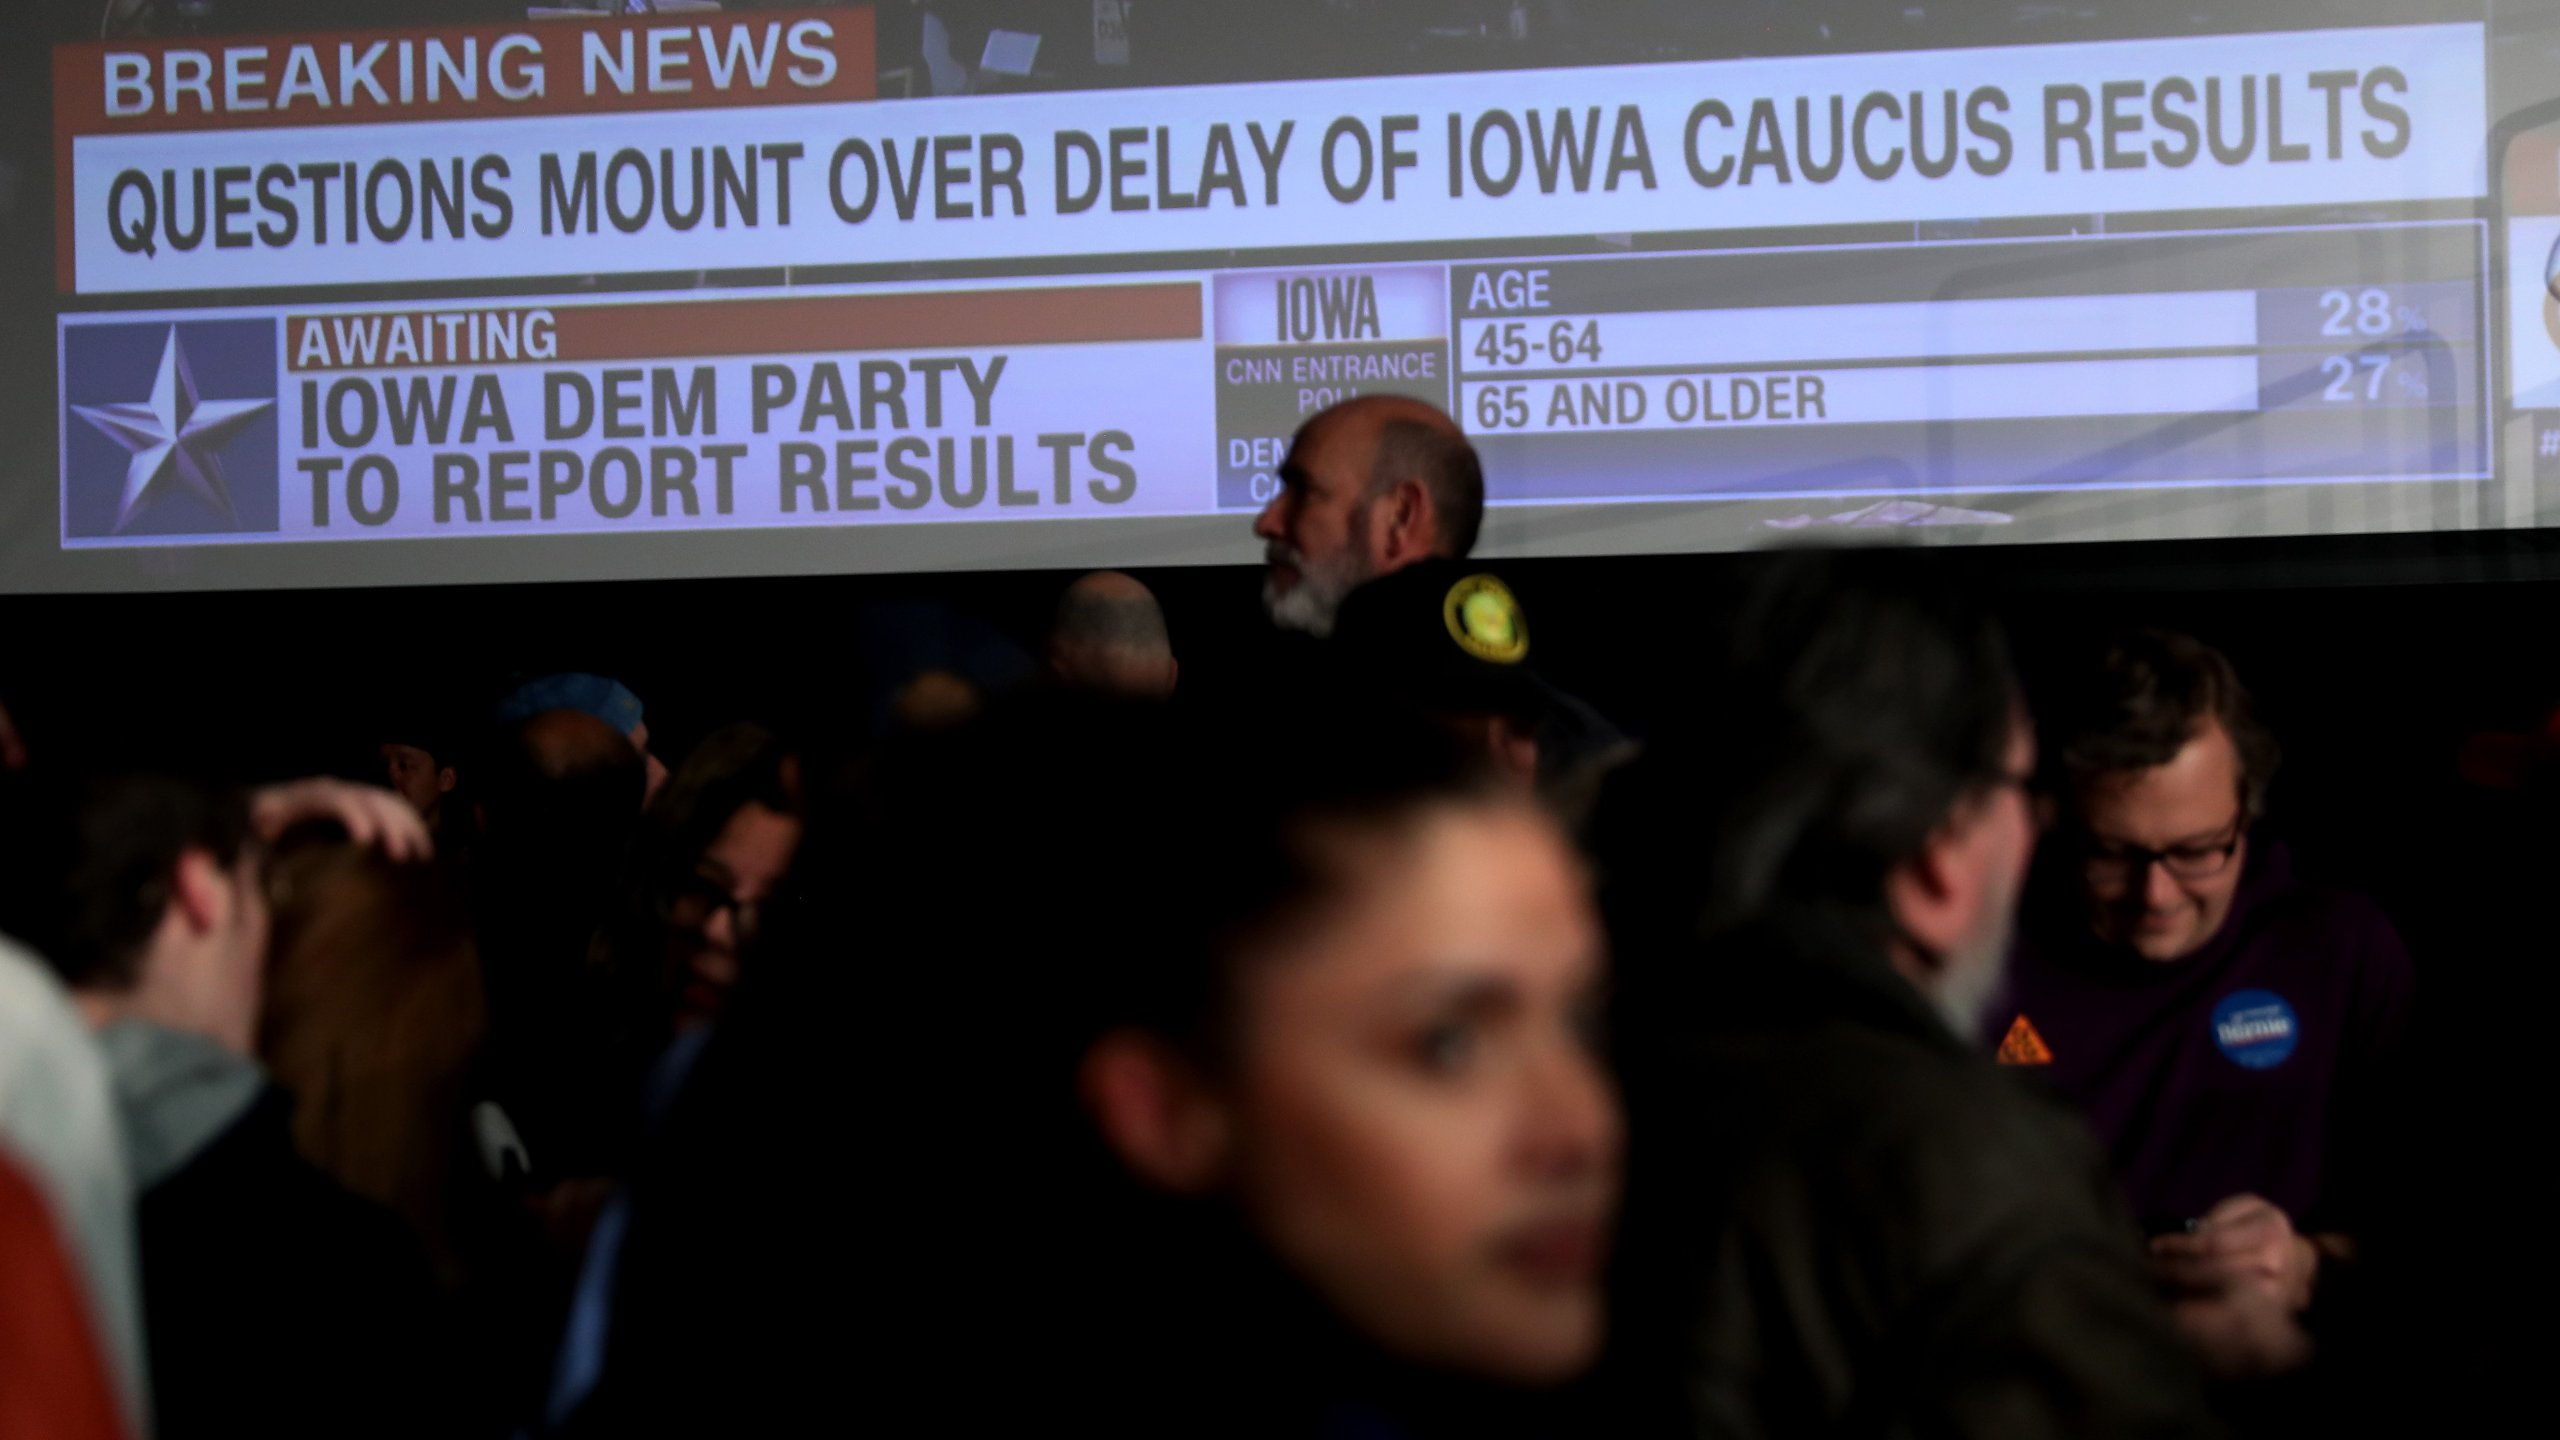 Supporters of Sen. Bernie Sanders (I-VT) wait for results to come in at his caucus night watch party on Feb. 3, 2020 in Des Moines, Iowa. (Credit: Joe Raedle/Getty Images)